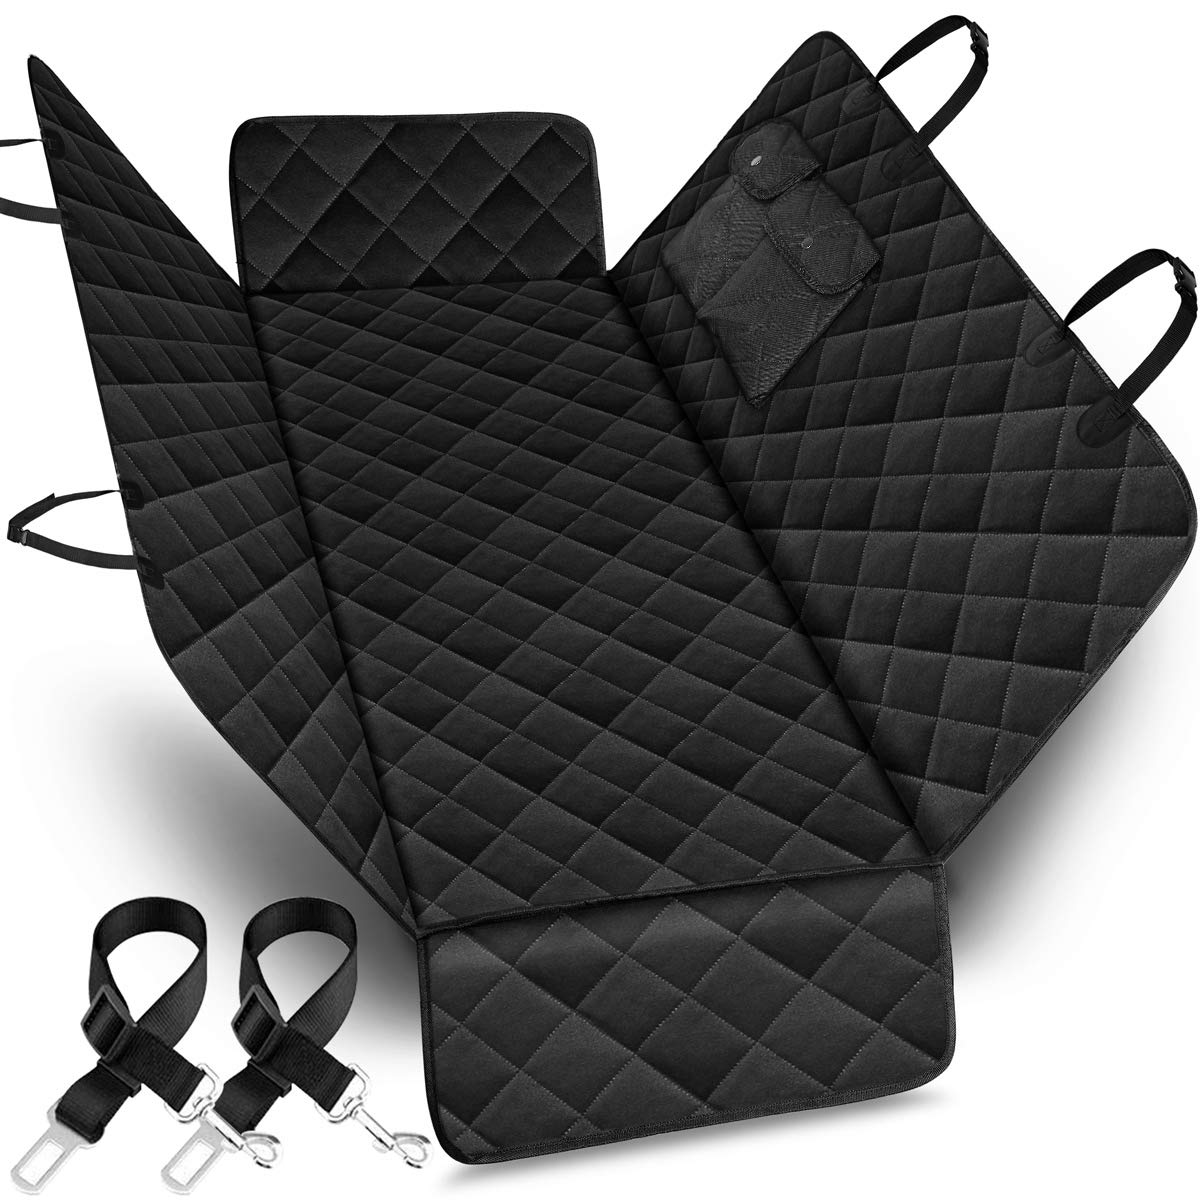 URPOWER 100% Waterproof Pet Seat Cover Car Seat Cover for Pets - Scratch Proof & Nonslip Backing & Hammock, Quilted, Padded, Durable Pet Seat Covers for Cars Trucks and SUVs by URPOWER